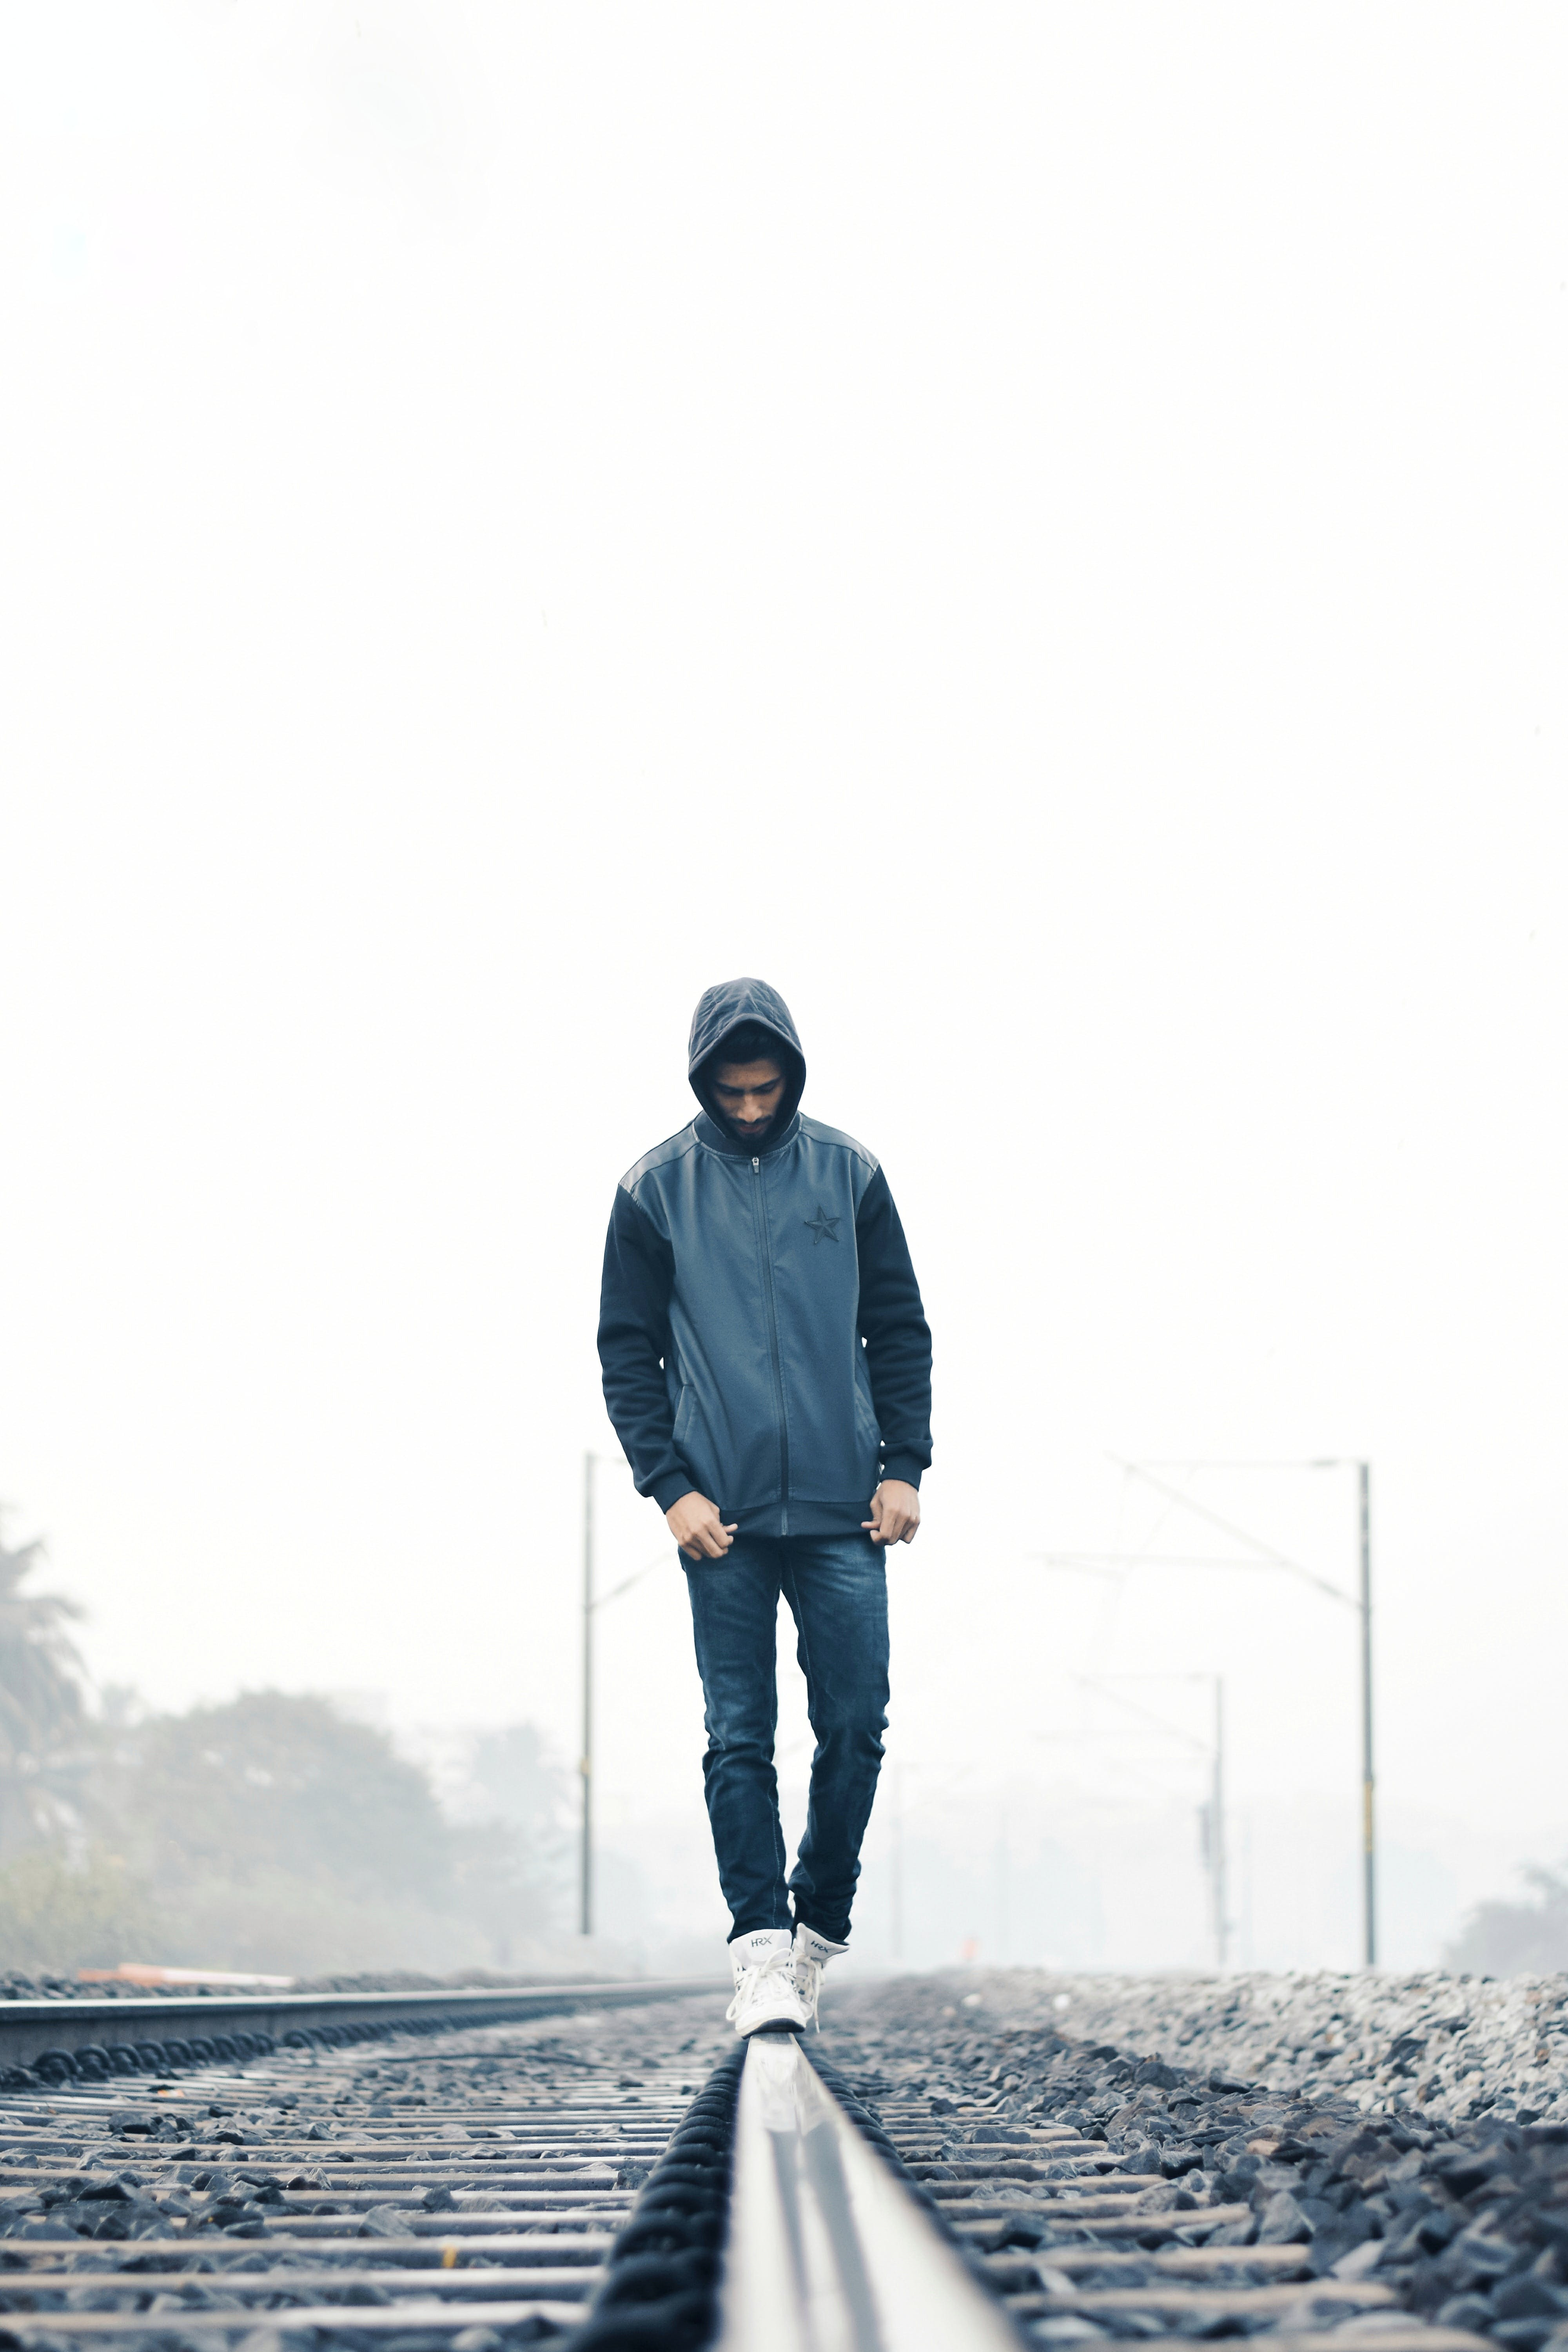 Man Wearing Gray and Black Zip-up Hoodie With Black Denim Jeans and White Shoes Walking on Train Railing Behind White Fog